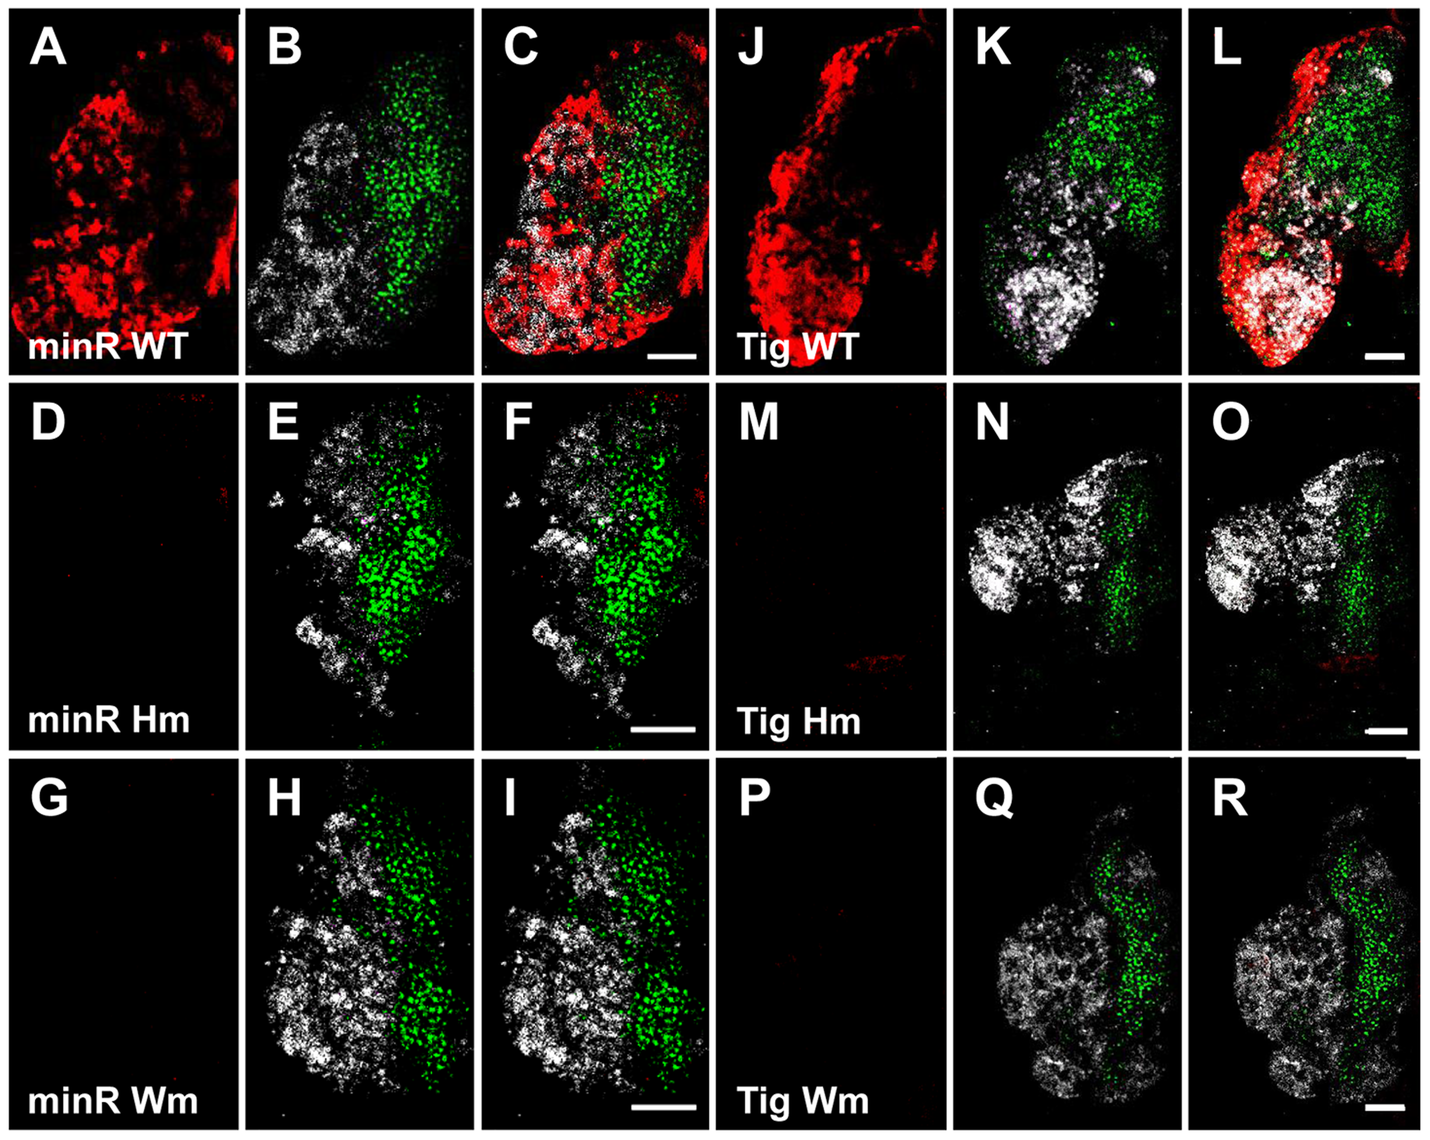 The TCF binding sites are required for expression of the <i>Tig</i> and minR reporters in the CZ of larval LG.